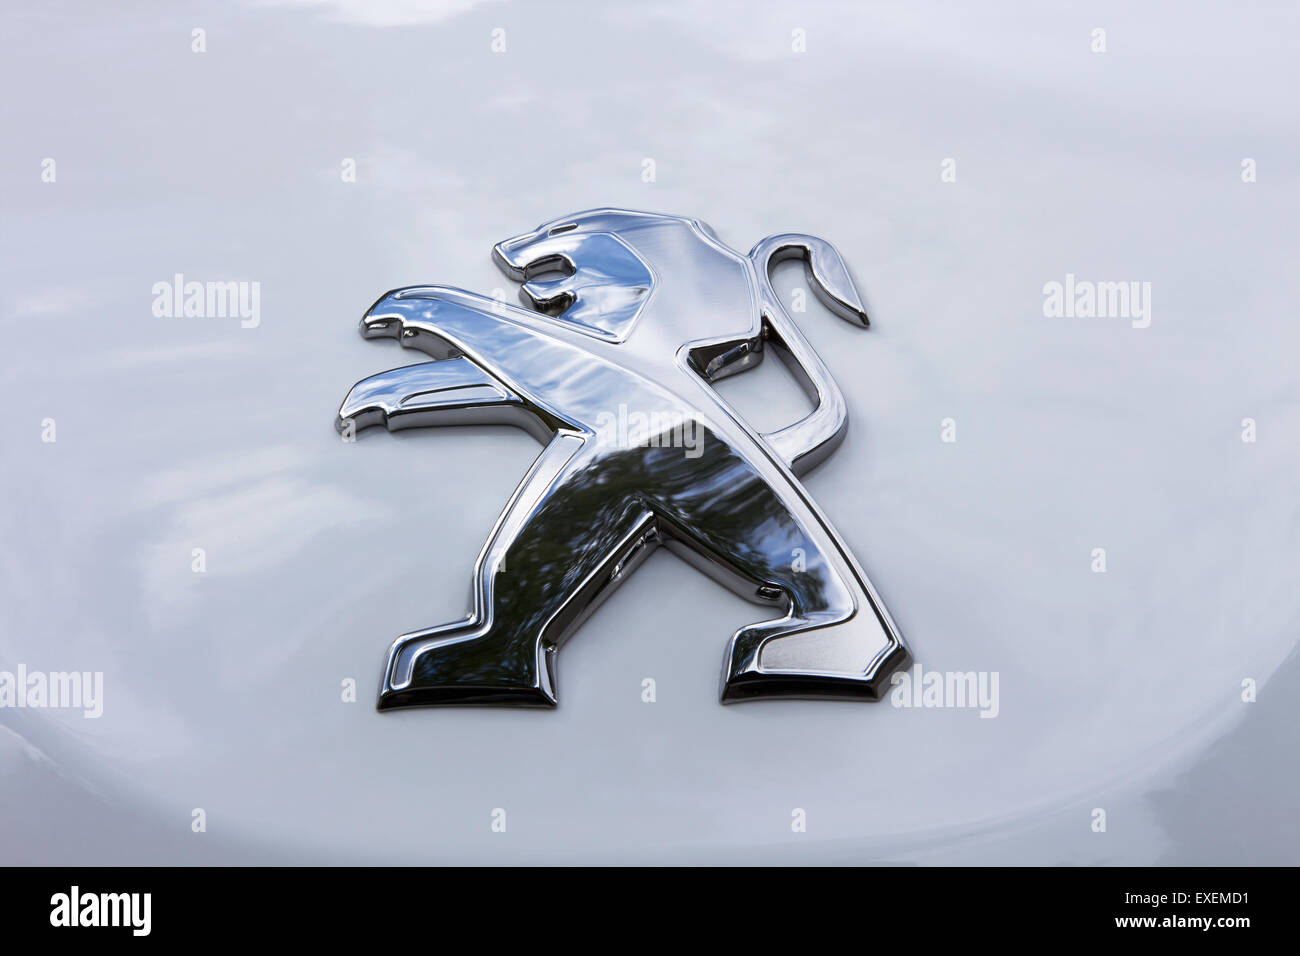 Peugeot 208 Emblem On Bonnet Stock Photo 85145901 Alamy